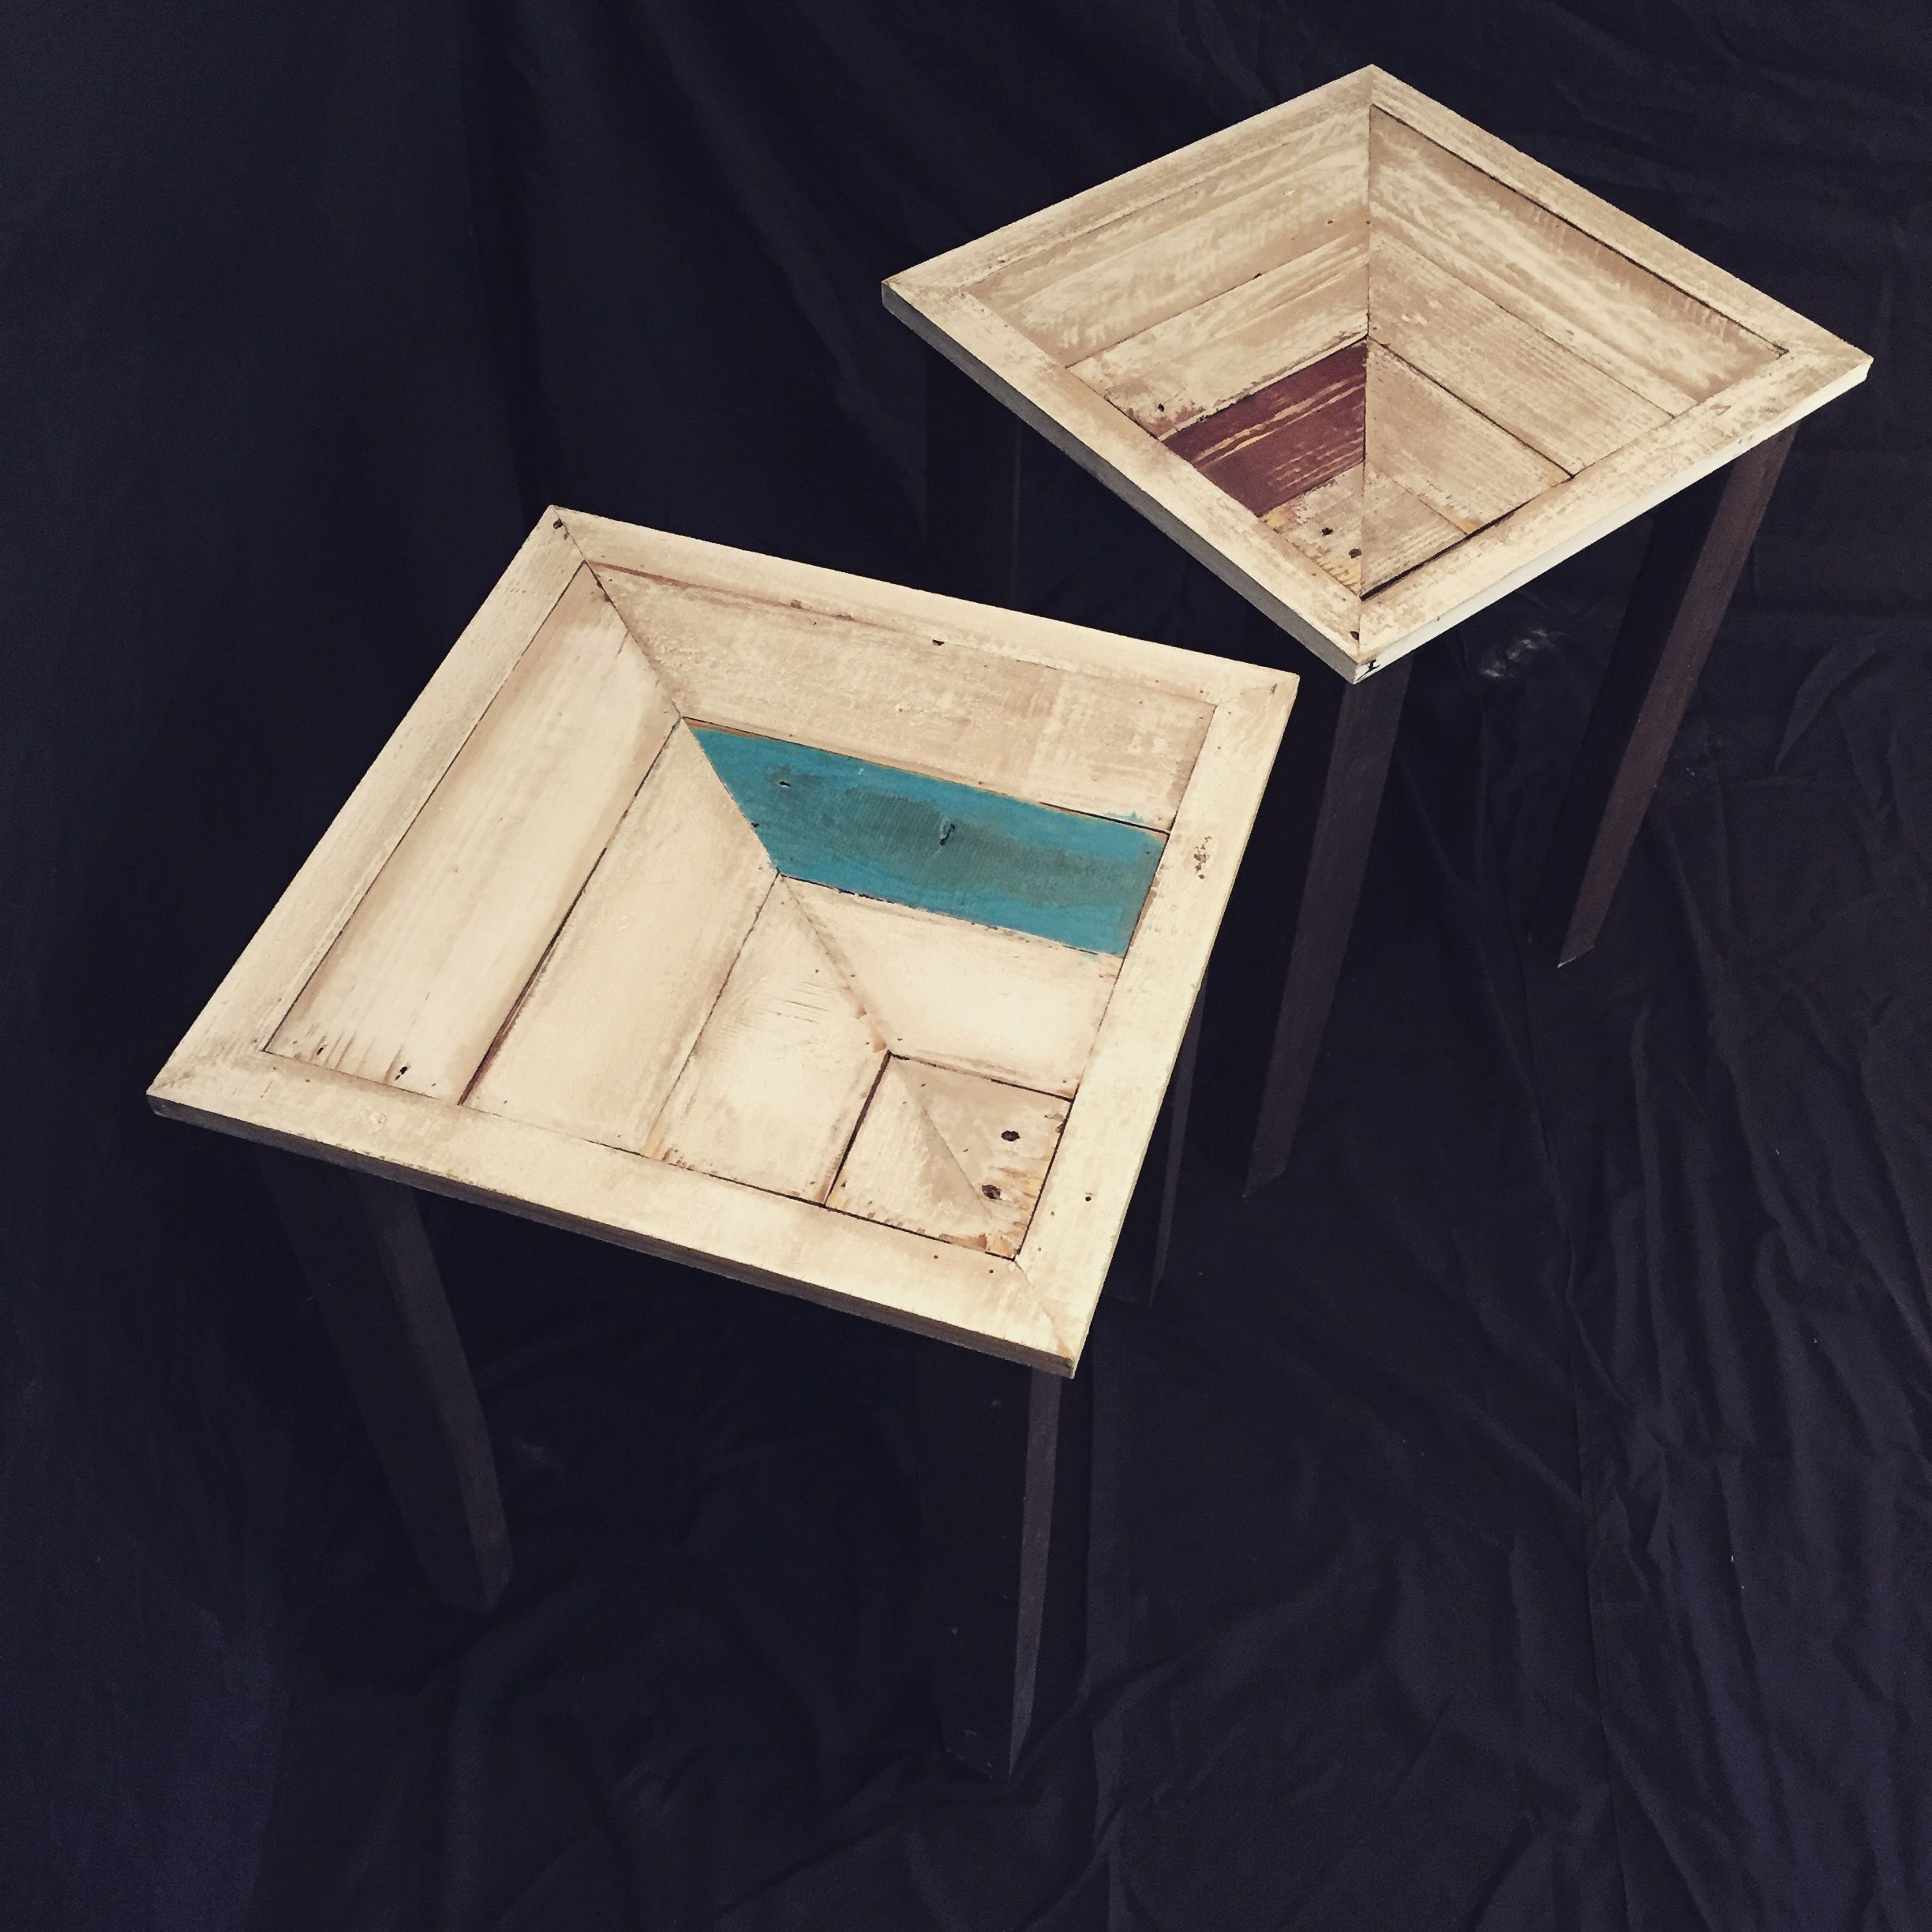 Matching End Tables from Reclaimed Pallet Wood $200 Each